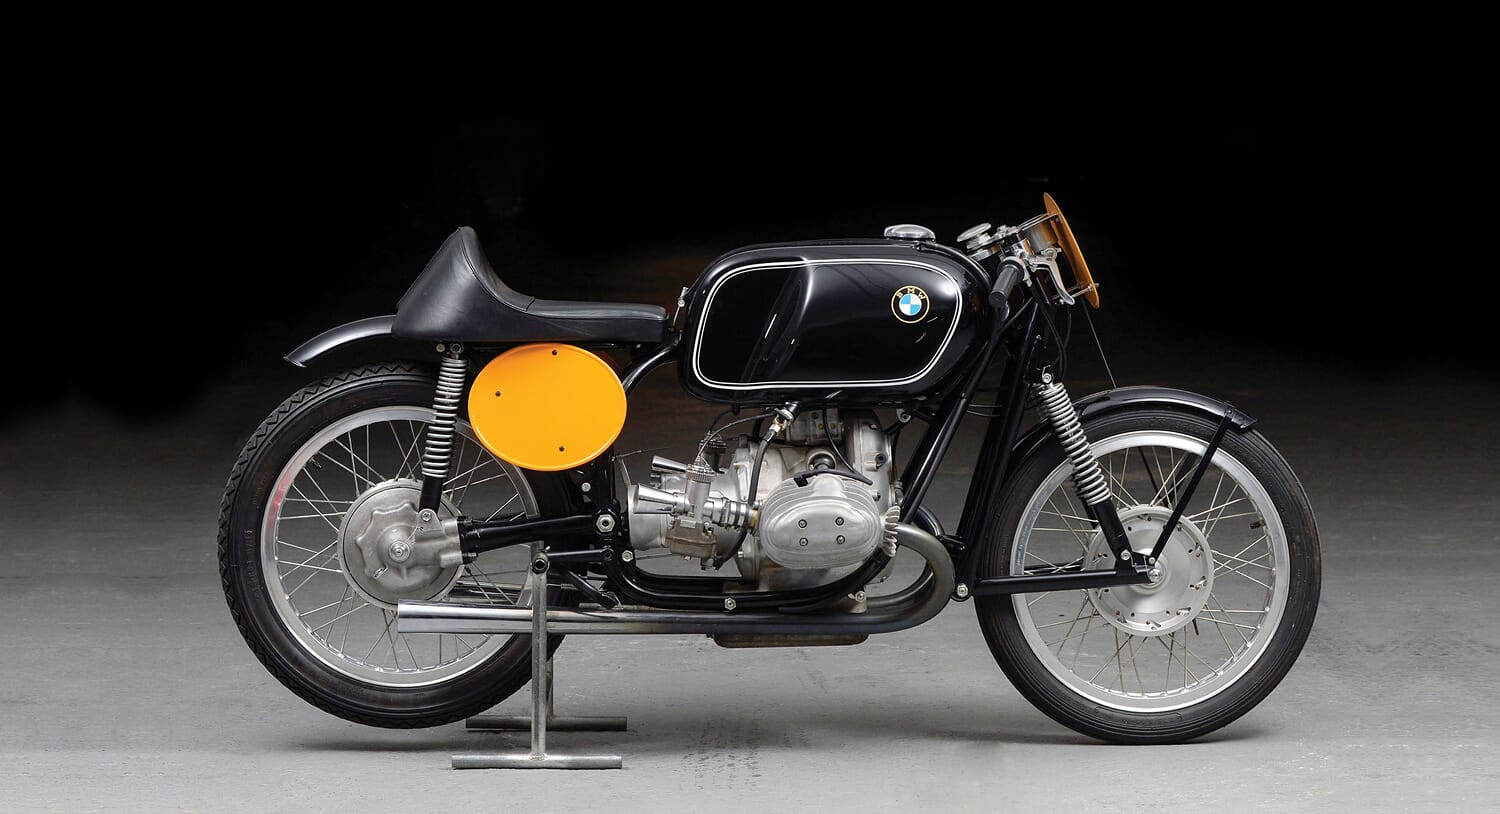 Reborn: Is This 1954 BMW RS 54 Better Than The Original?